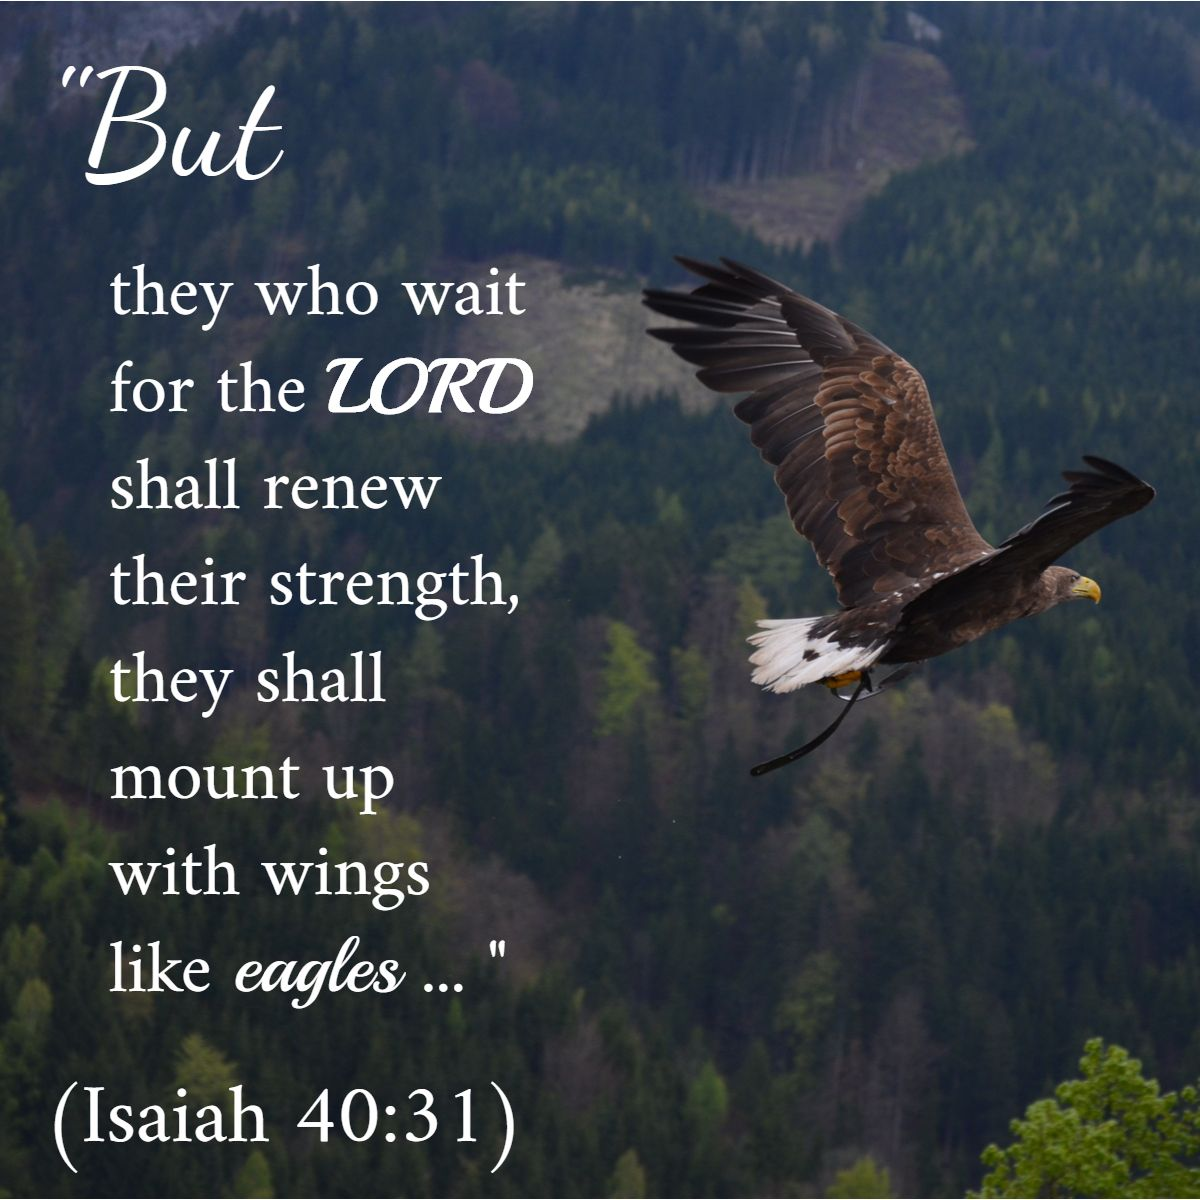 "They shall mount up with wings like eagles"" - Isaiah 40:31 #Amen ..."